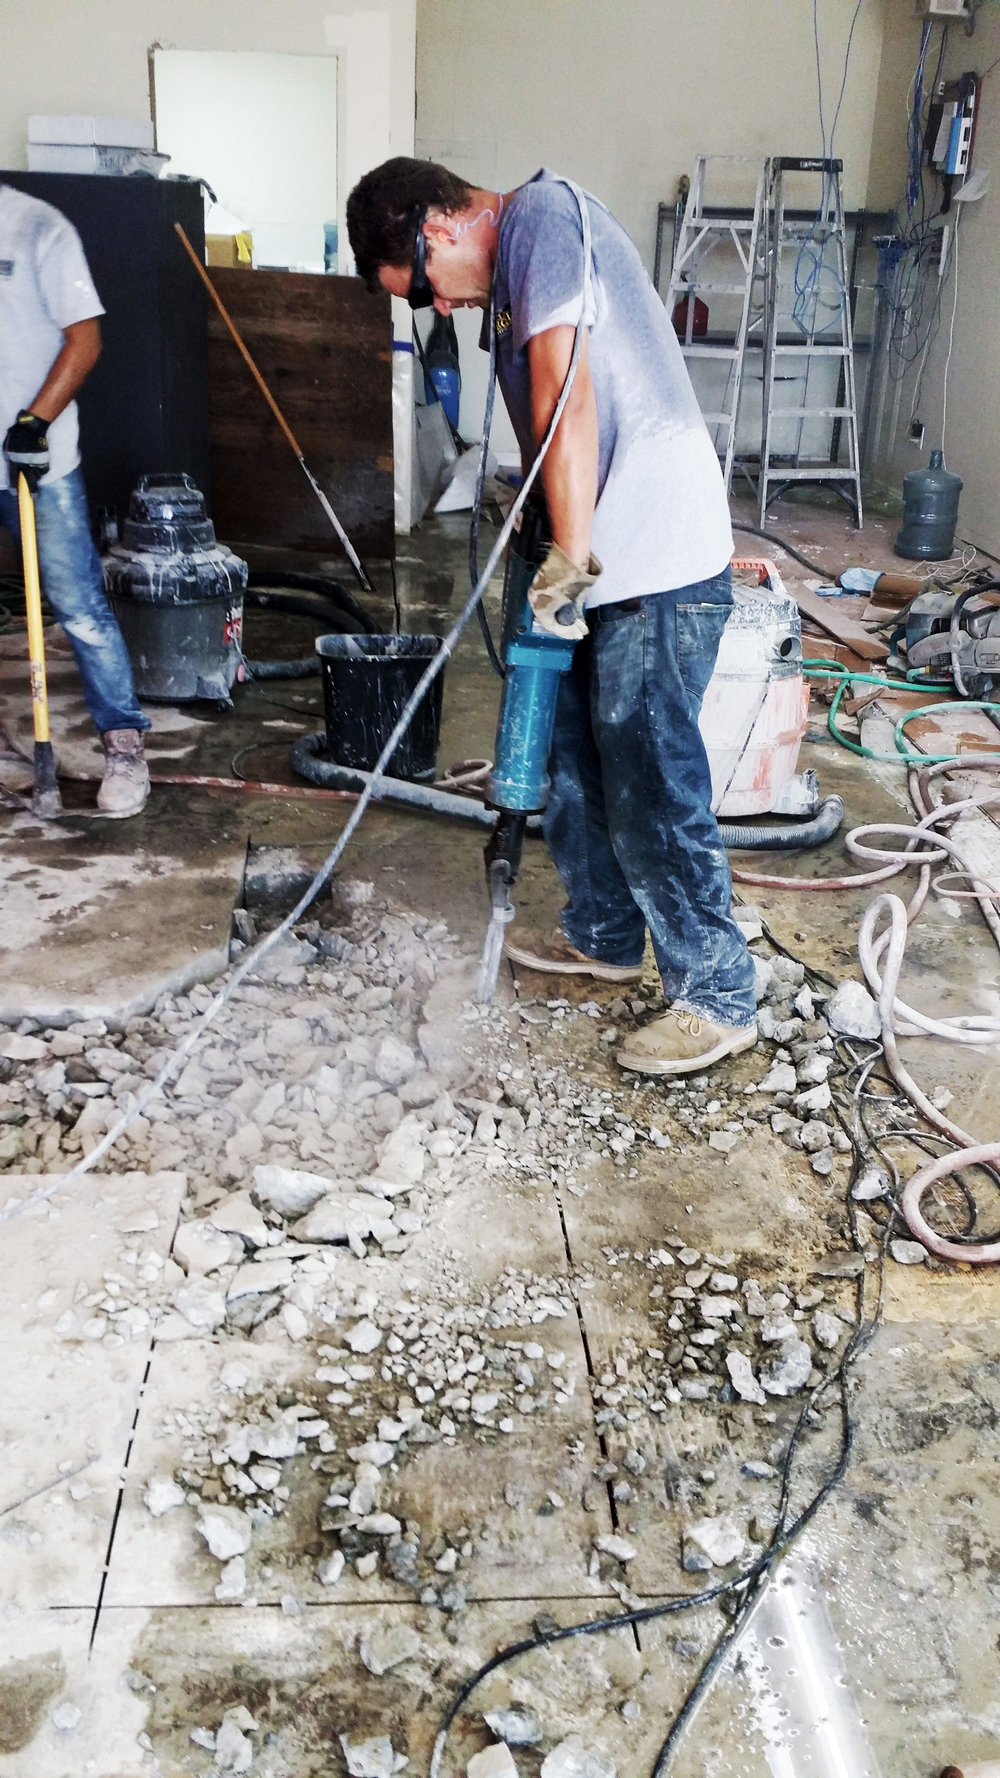 Concrete drilling att rowland heights.jpg